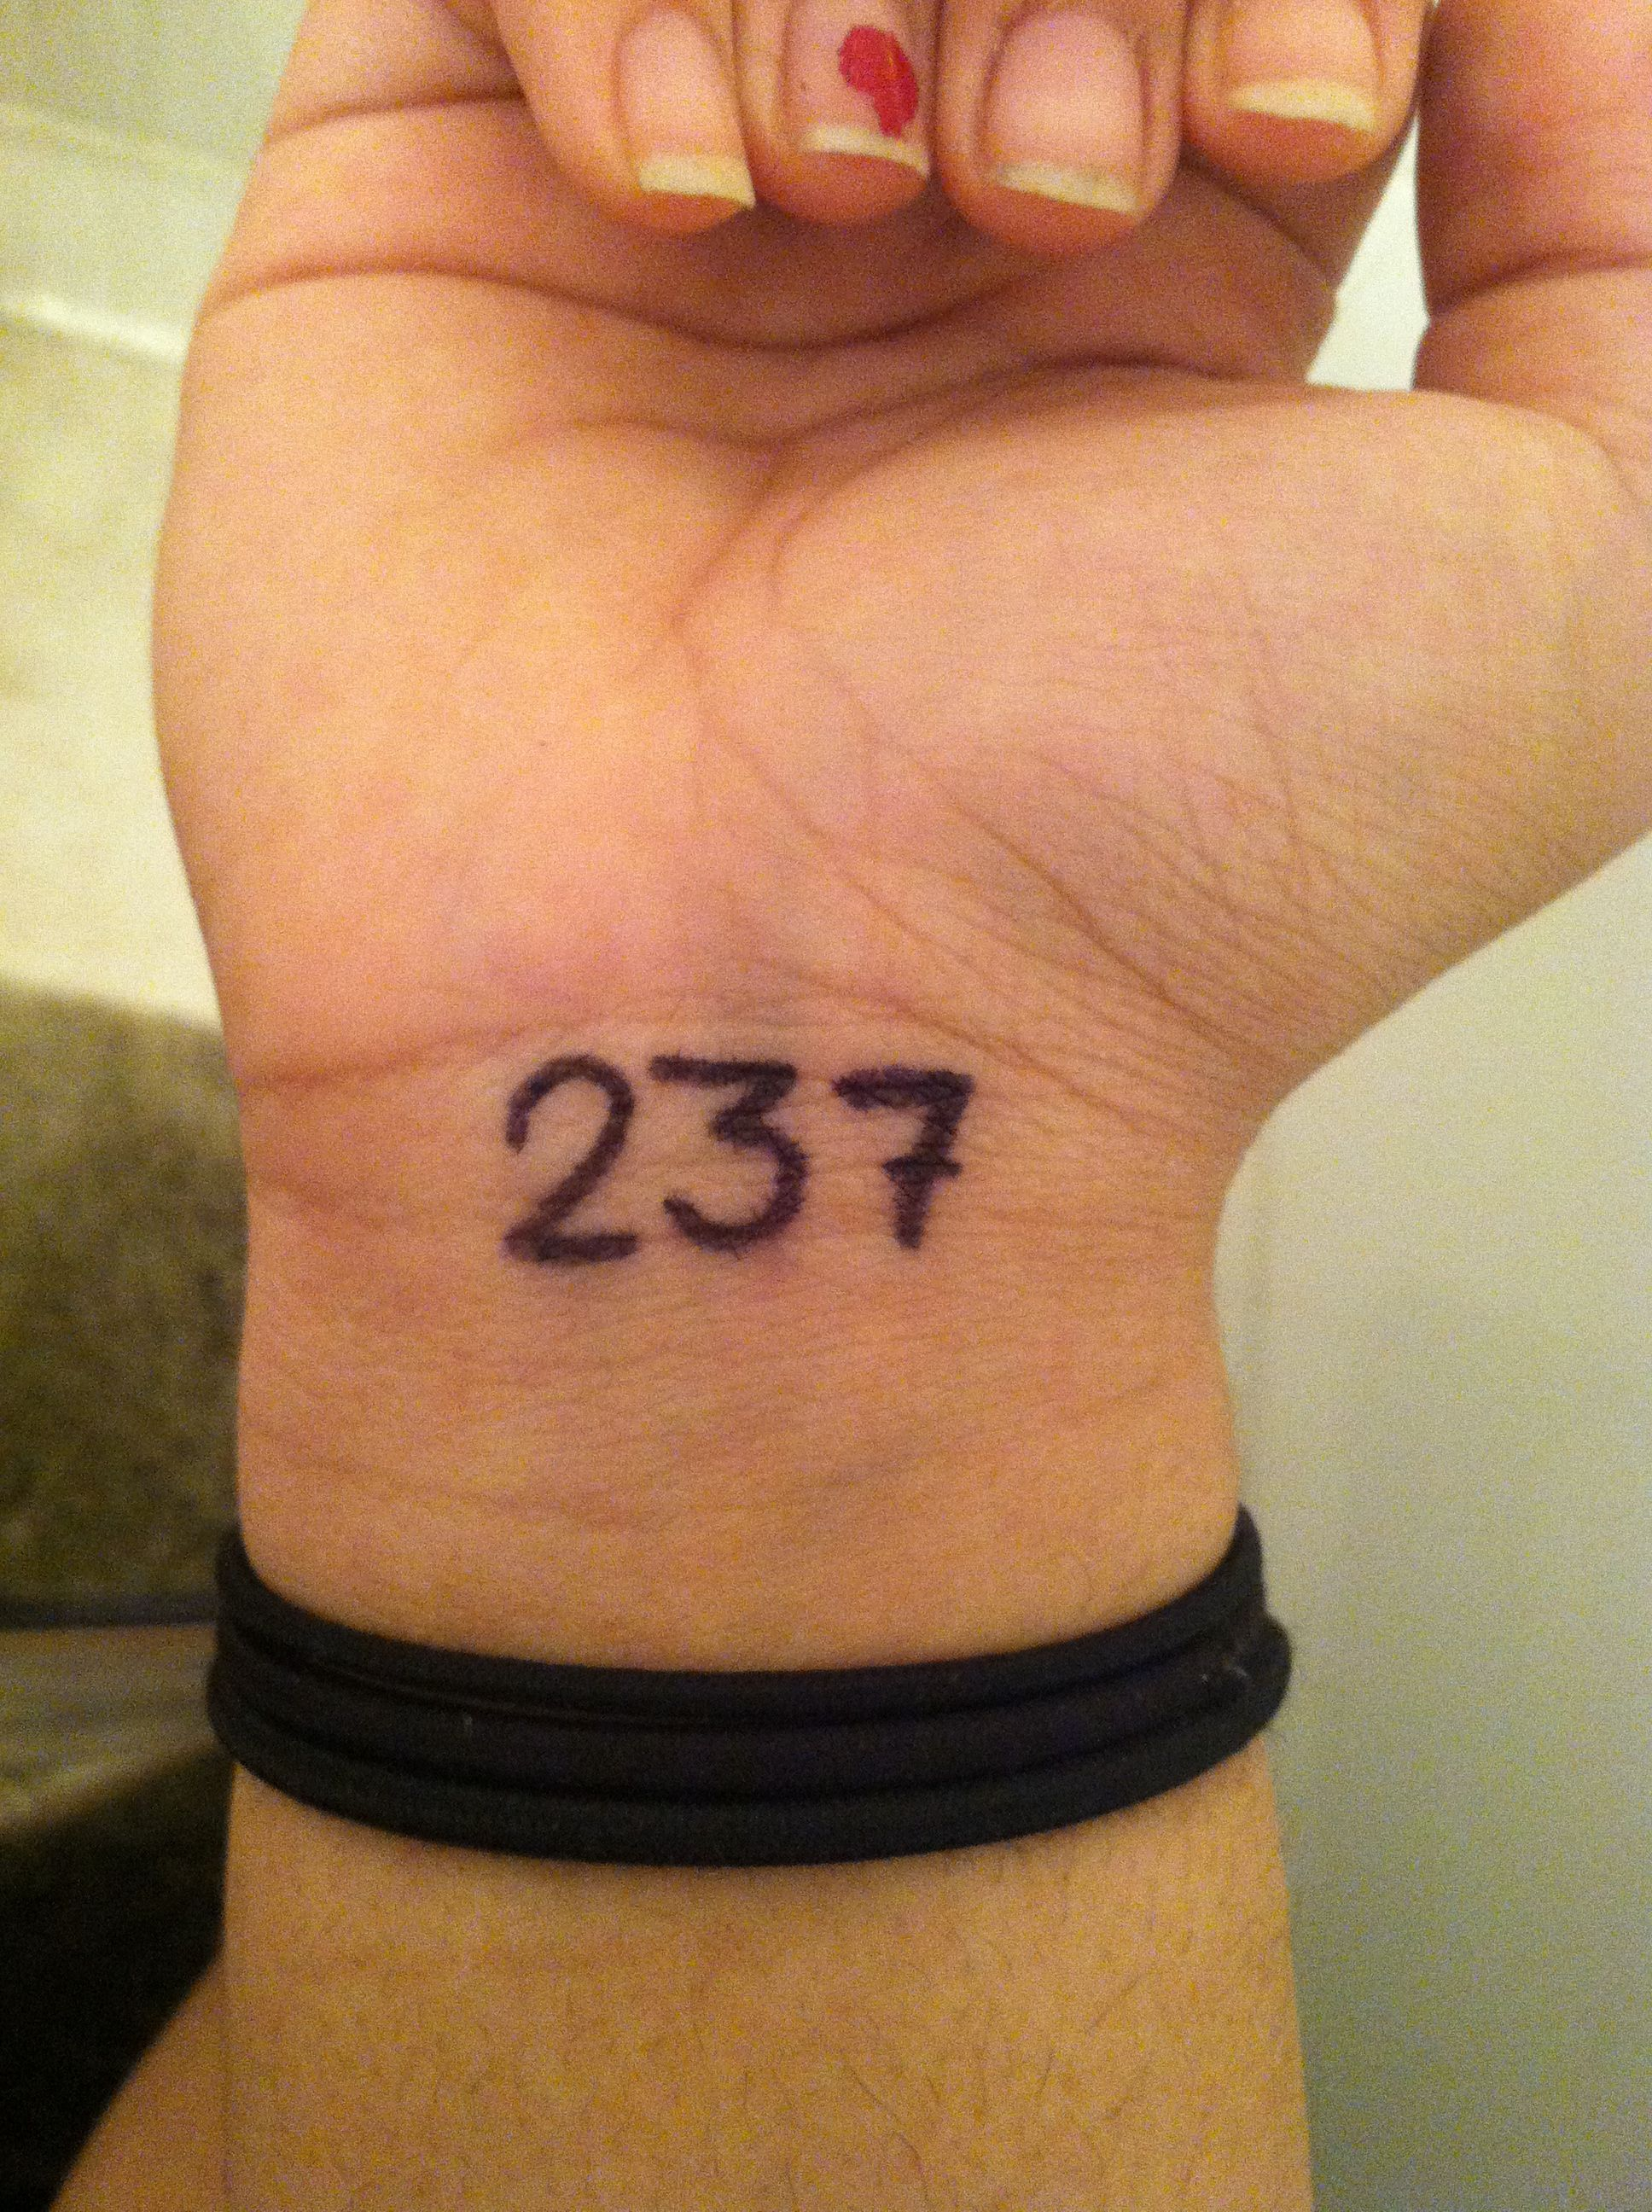 Tattoo Idea No 7 Stands For I M Not Perfect Same Concept As 143 Meaning I Love You Beautiful Tattoos Tattoos Cool Tattoos